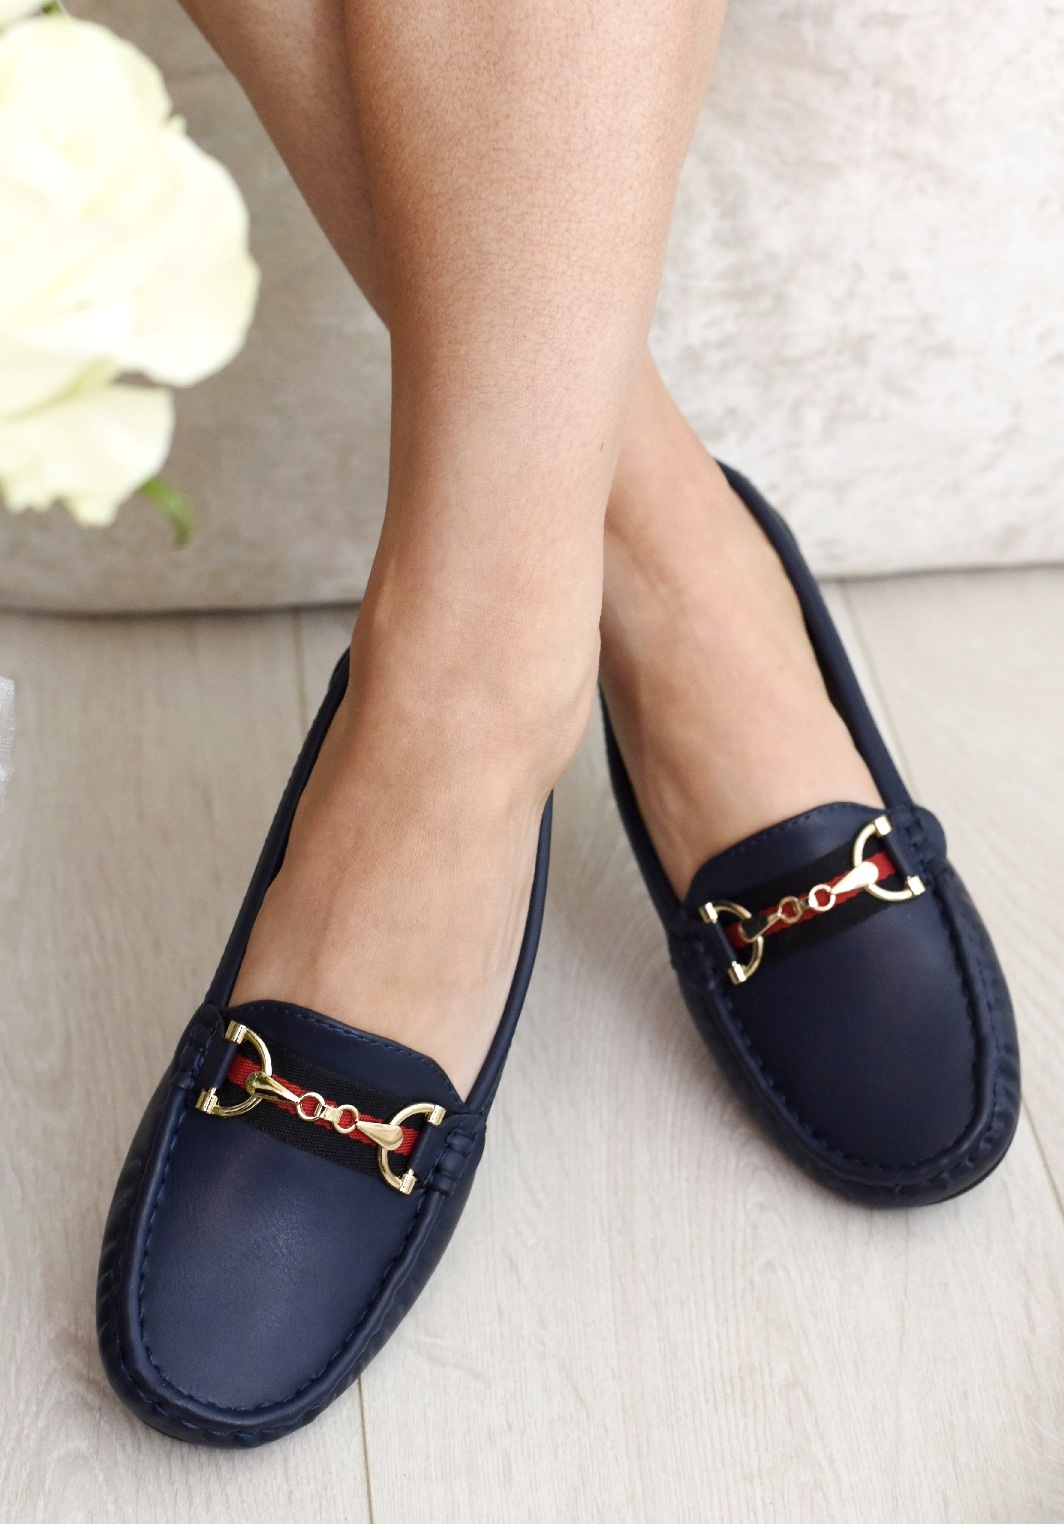 LADIES-WOMENS-FLATS-SLIP-ON-LOAFERS-WORK-OFFICE-BUCKLE-PUMPS-COMFY-SHOES-SZ-3-8 thumbnail 11